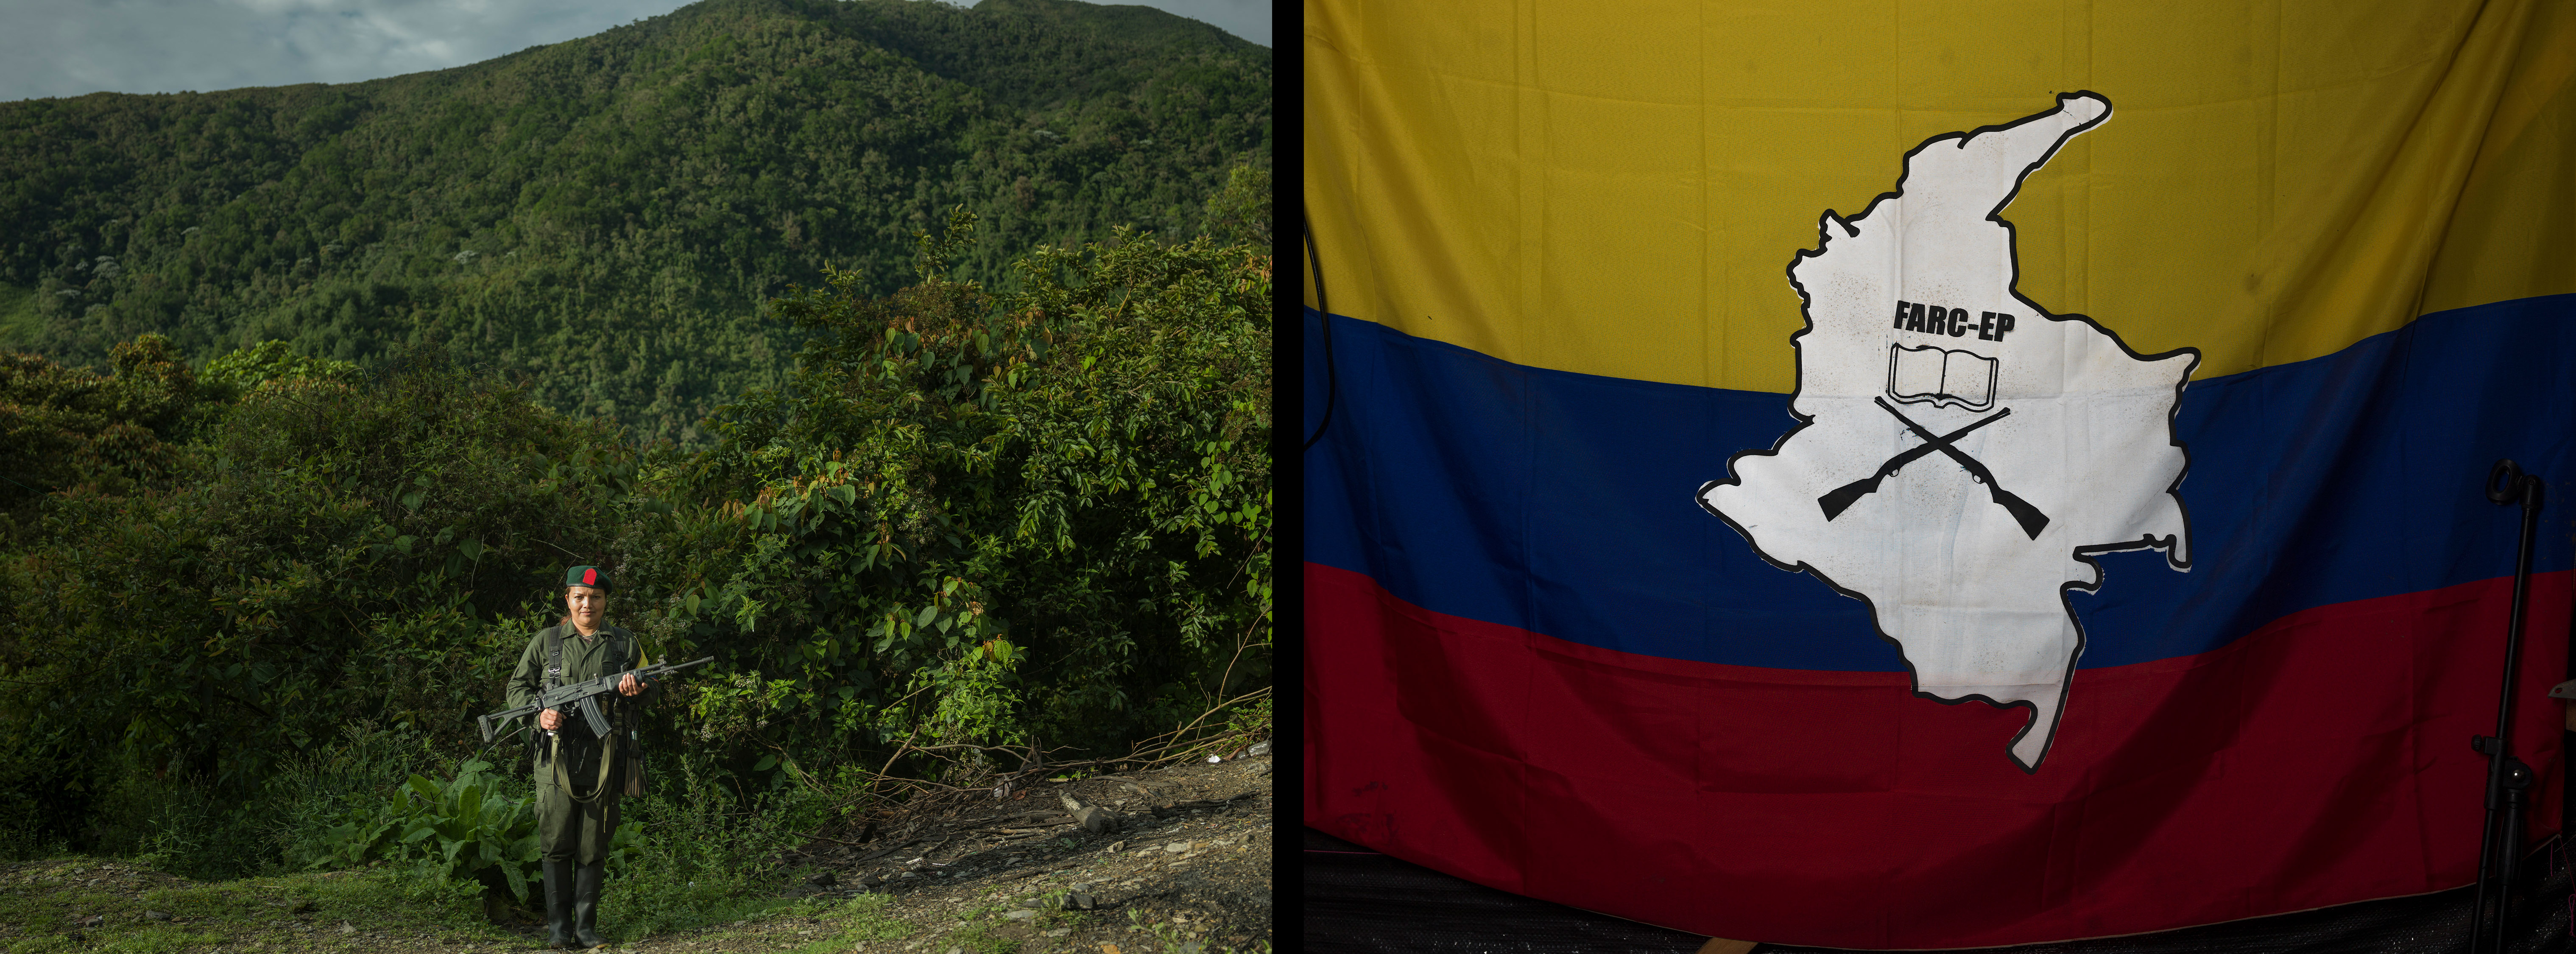 intercept-FARC-colombia-newsha-Tavakolian-magnum-photography-31-b-1490294678